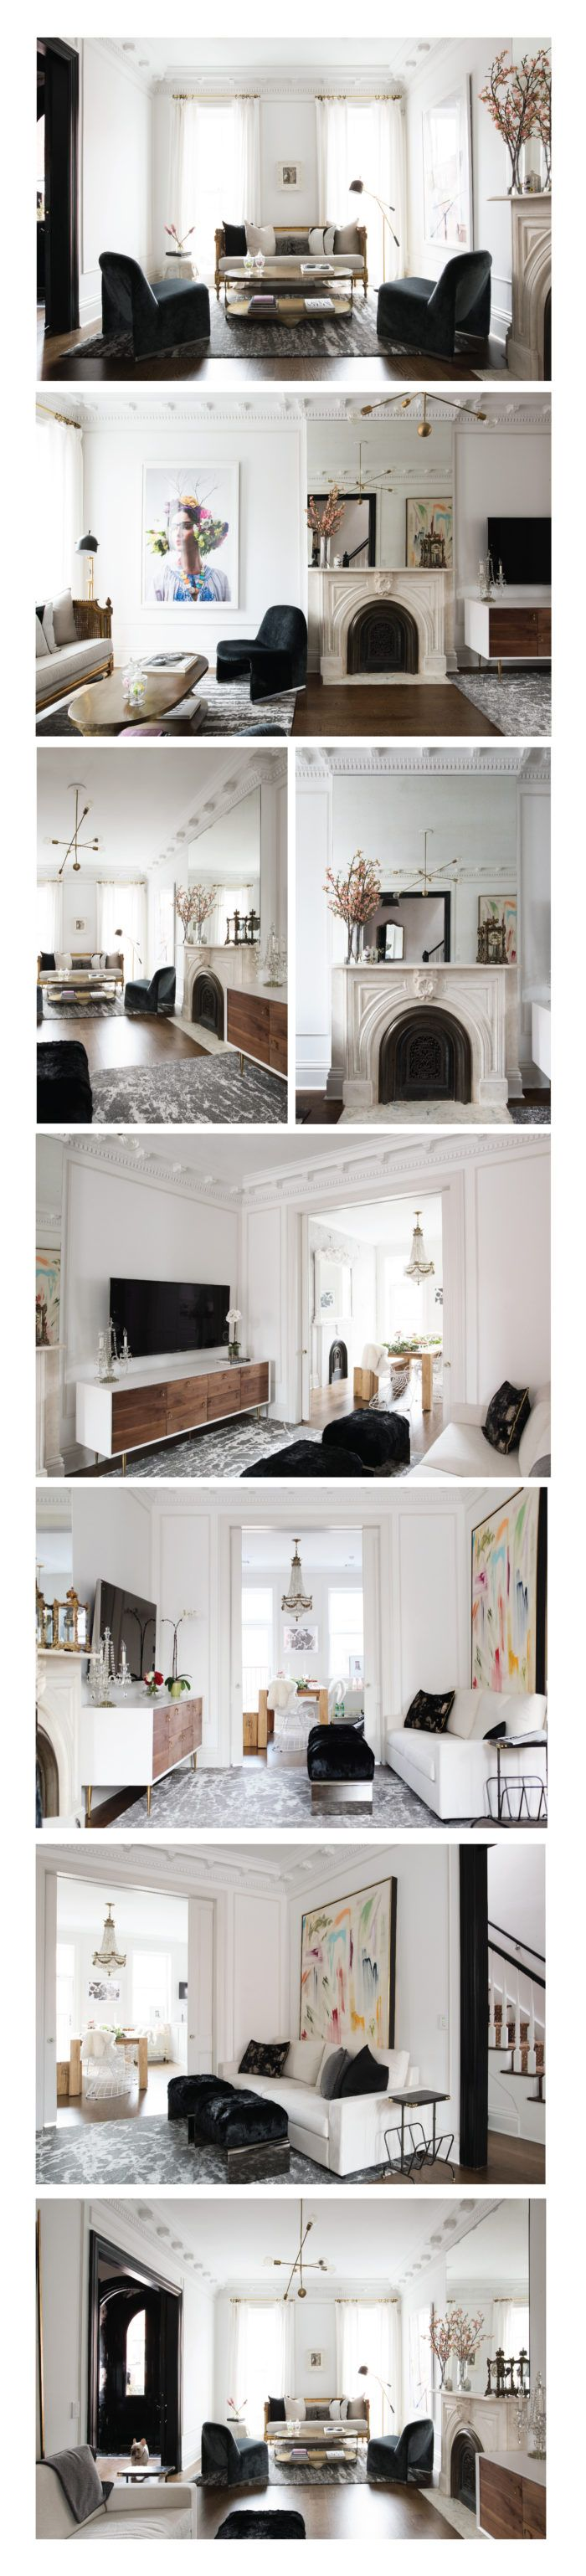 Pinned for layout: fireplace in middle of room almost as room divider - could work for us